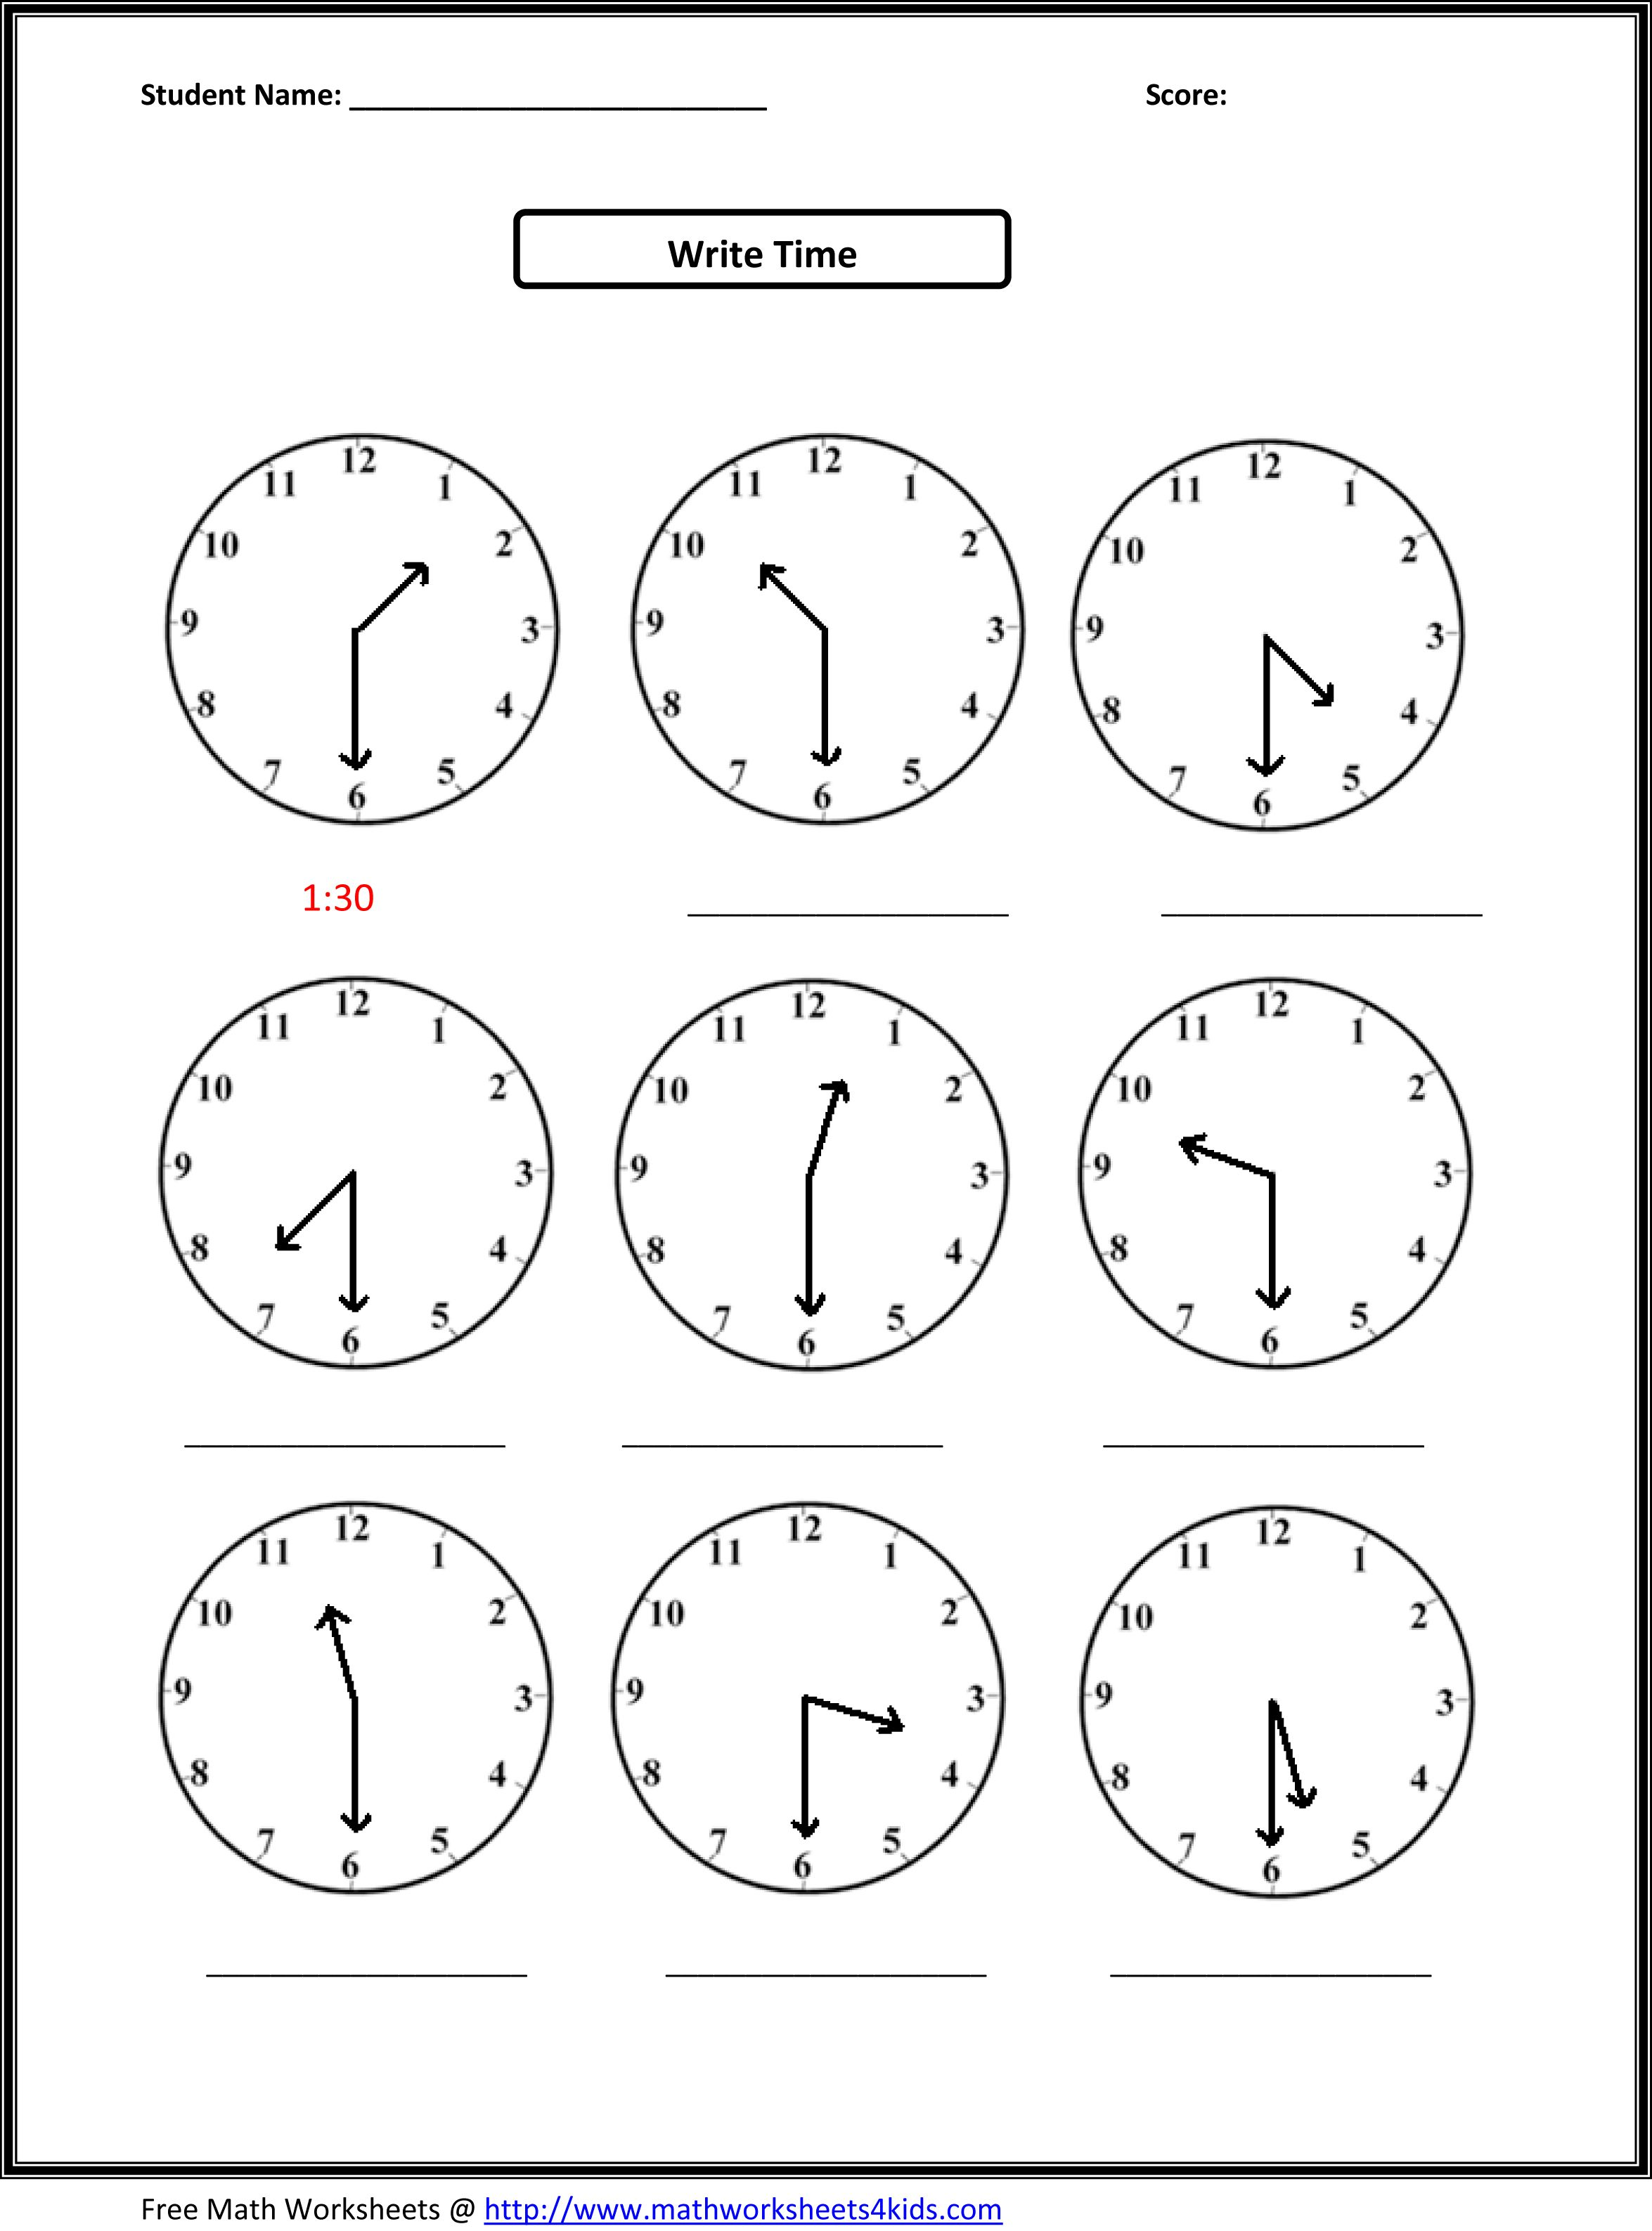 Weirdmailus  Unusual Worksheet On Time For Grade   Reocurent With Outstanding Free Printable Telling Time Worksheets Nd Grade  Reocurent With Breathtaking Atoms And Elements Worksheet Answers Also Collision Theory Worksheet In Addition Free Fall Worksheet And Guide Words Worksheet As Well As Th Grade Writing Worksheets Additionally Converting Decimals To Fractions Worksheets From Reocurentcom With Weirdmailus  Outstanding Worksheet On Time For Grade   Reocurent With Breathtaking Free Printable Telling Time Worksheets Nd Grade  Reocurent And Unusual Atoms And Elements Worksheet Answers Also Collision Theory Worksheet In Addition Free Fall Worksheet From Reocurentcom